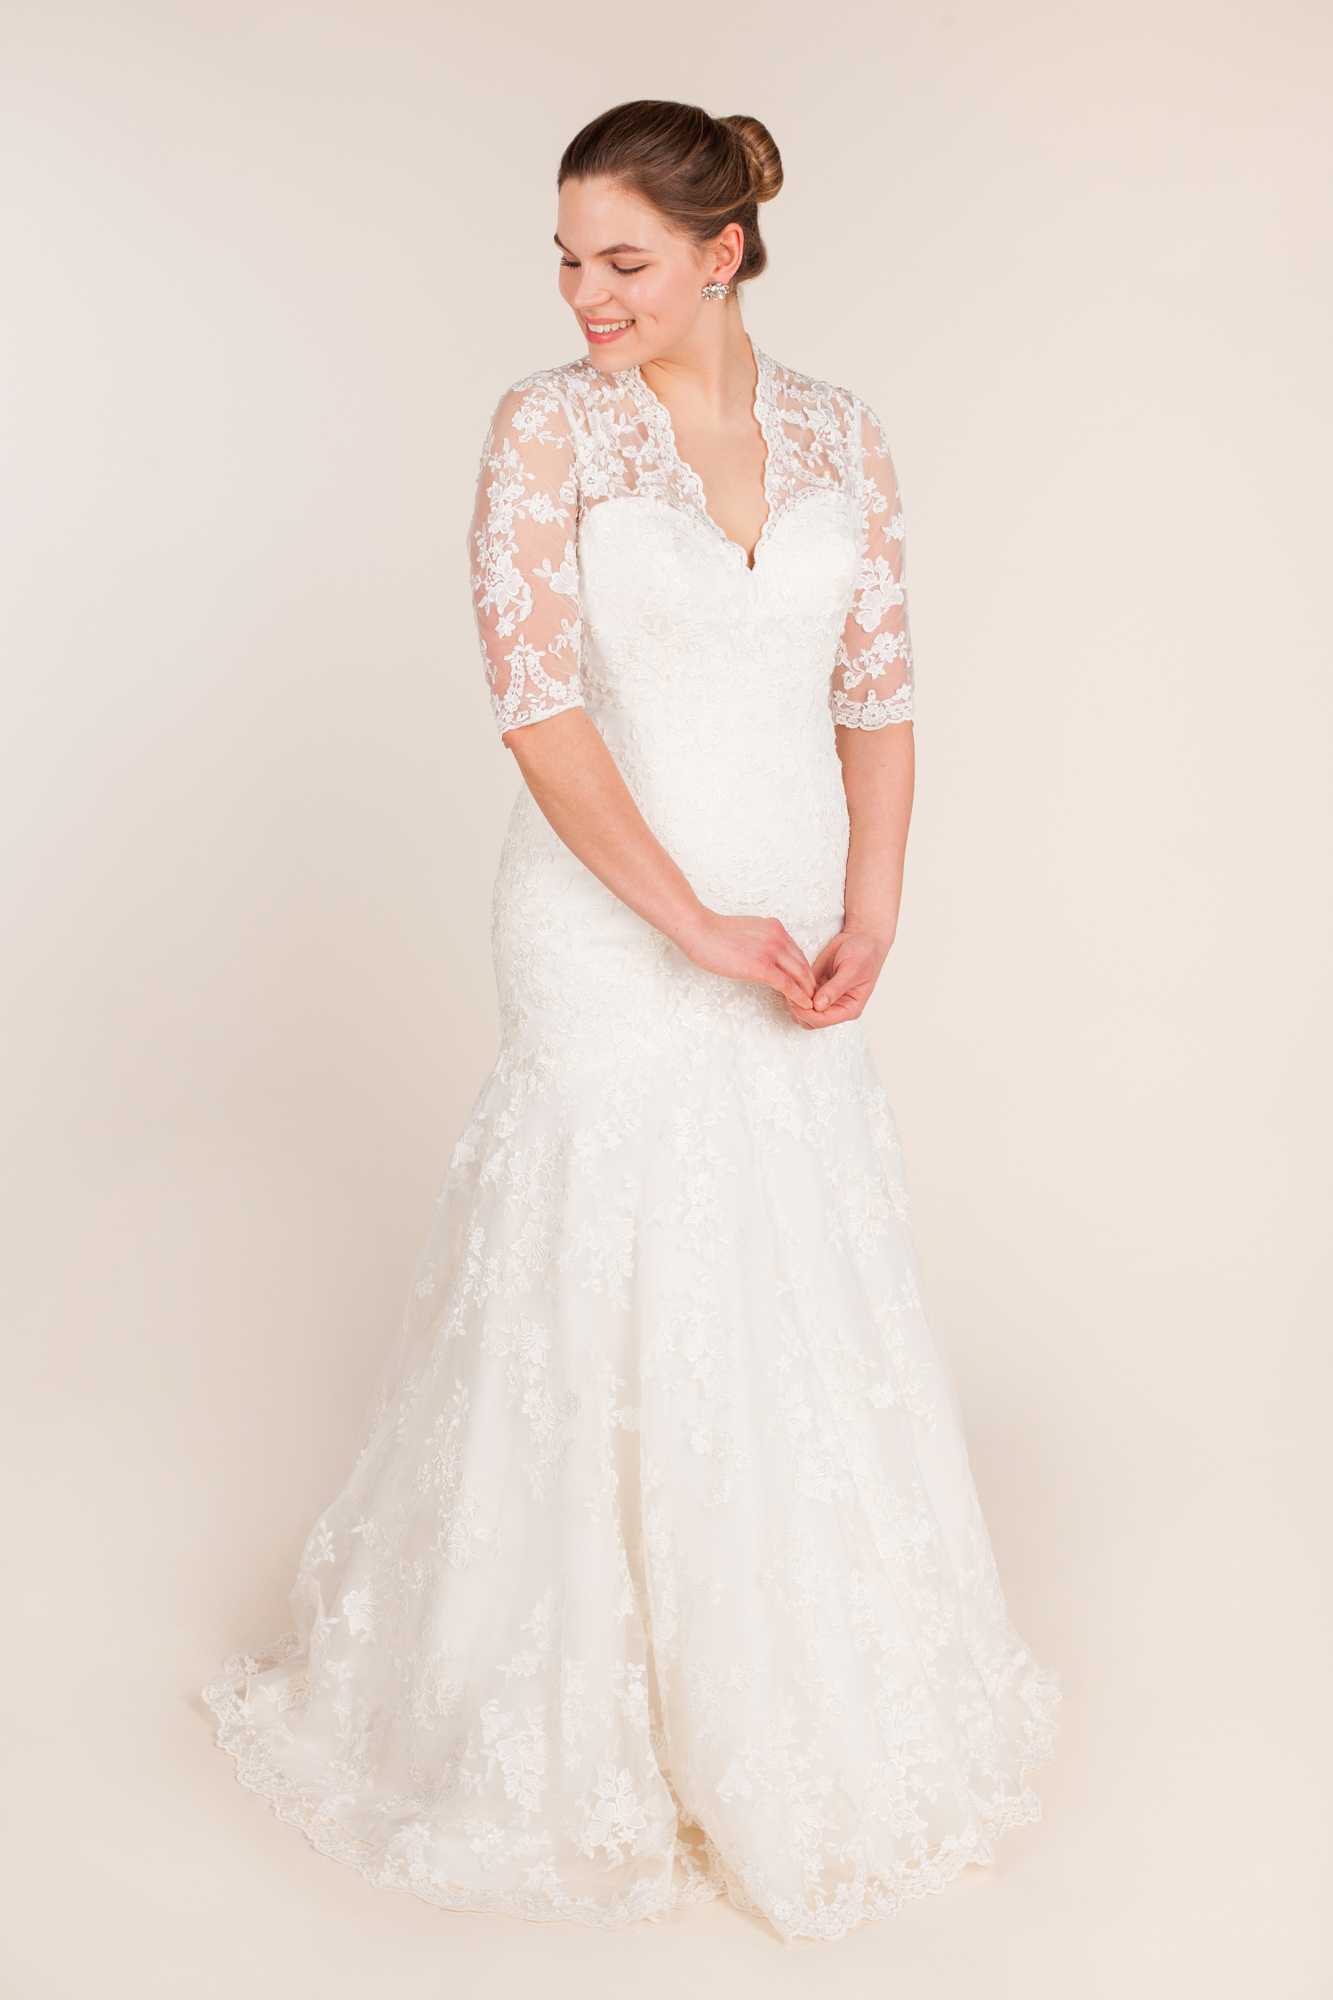 Allure bridals - 8900 size  - $850 - (29% OFF)